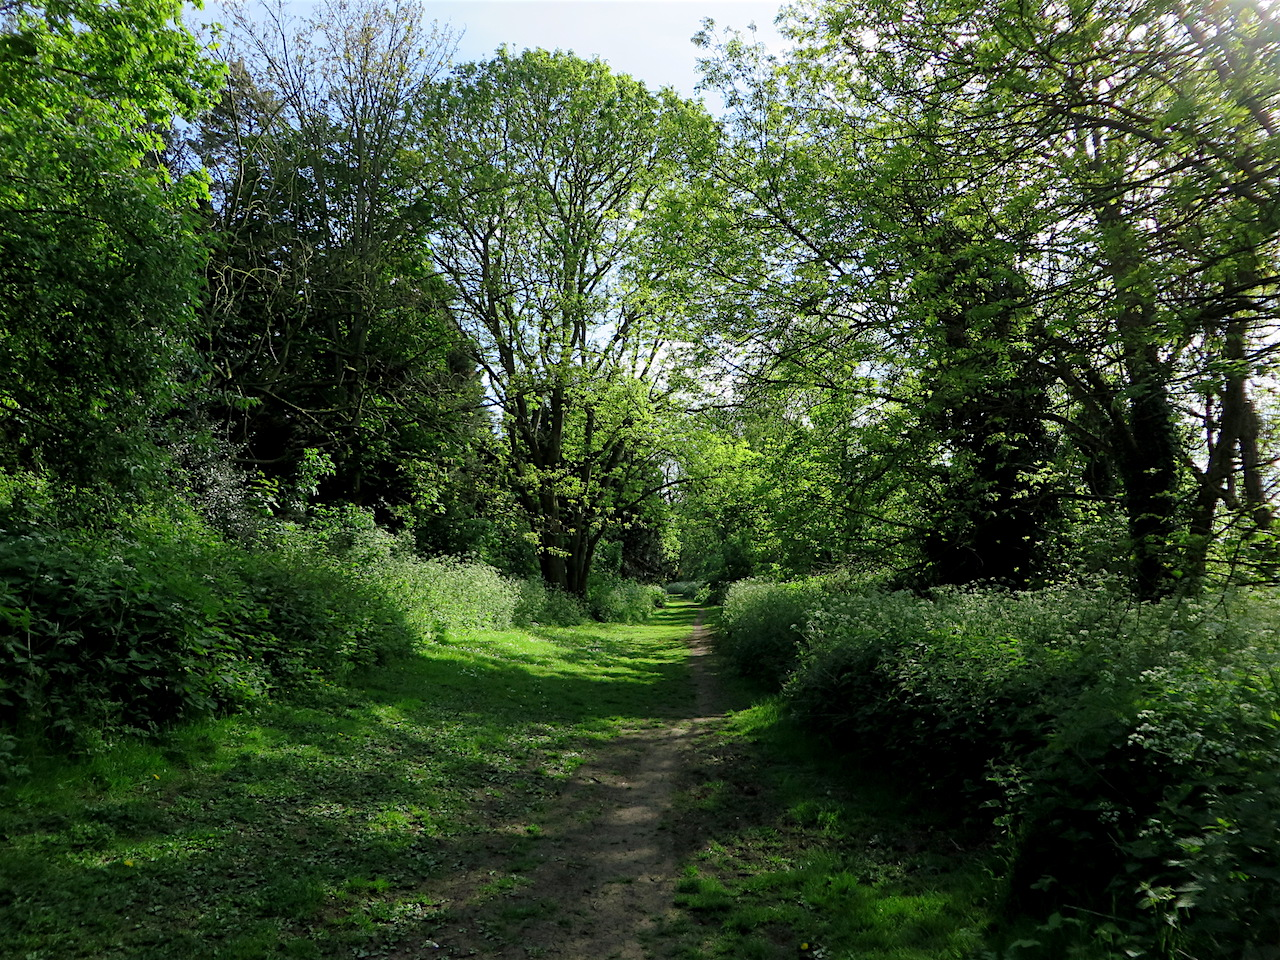 Brenchley Gardens, Forest Hill, London SE23 on May 11, 2015, on the route of a railway line from Nunhead to Crystal Palace High Level that was opened by the London, Chatham and Dover Railway in 1865 to serve the Crystal Palace, which finally closed in 1954 (Photo: Andy Worthington).